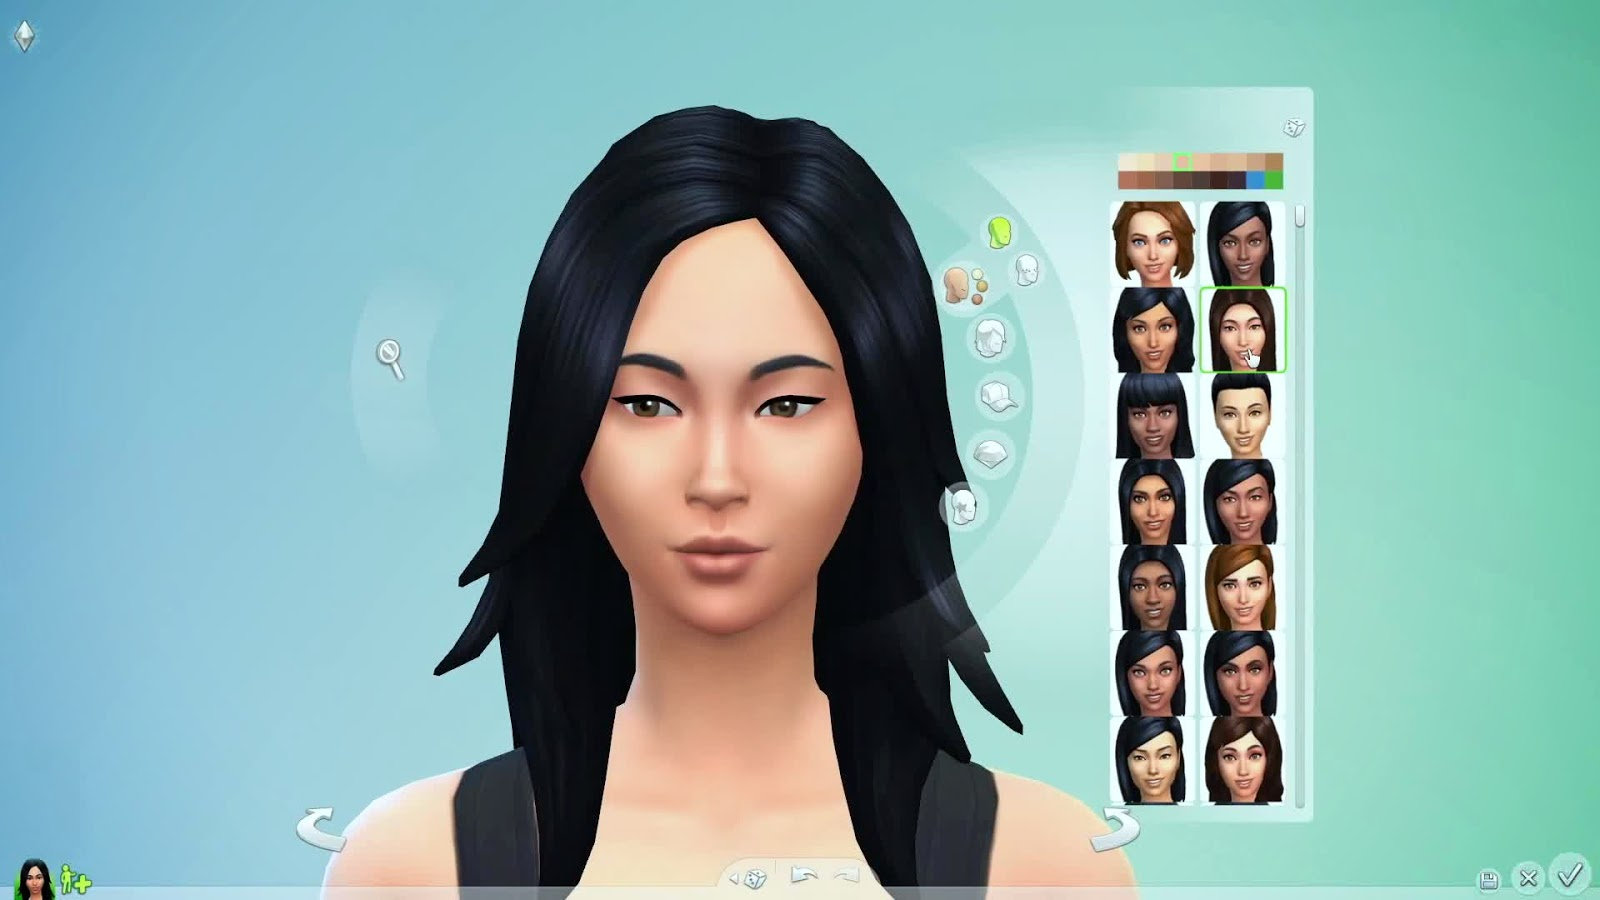 My Sims 3 Blog: The Sims 4: Create A Sim Official Gameplay Trailer